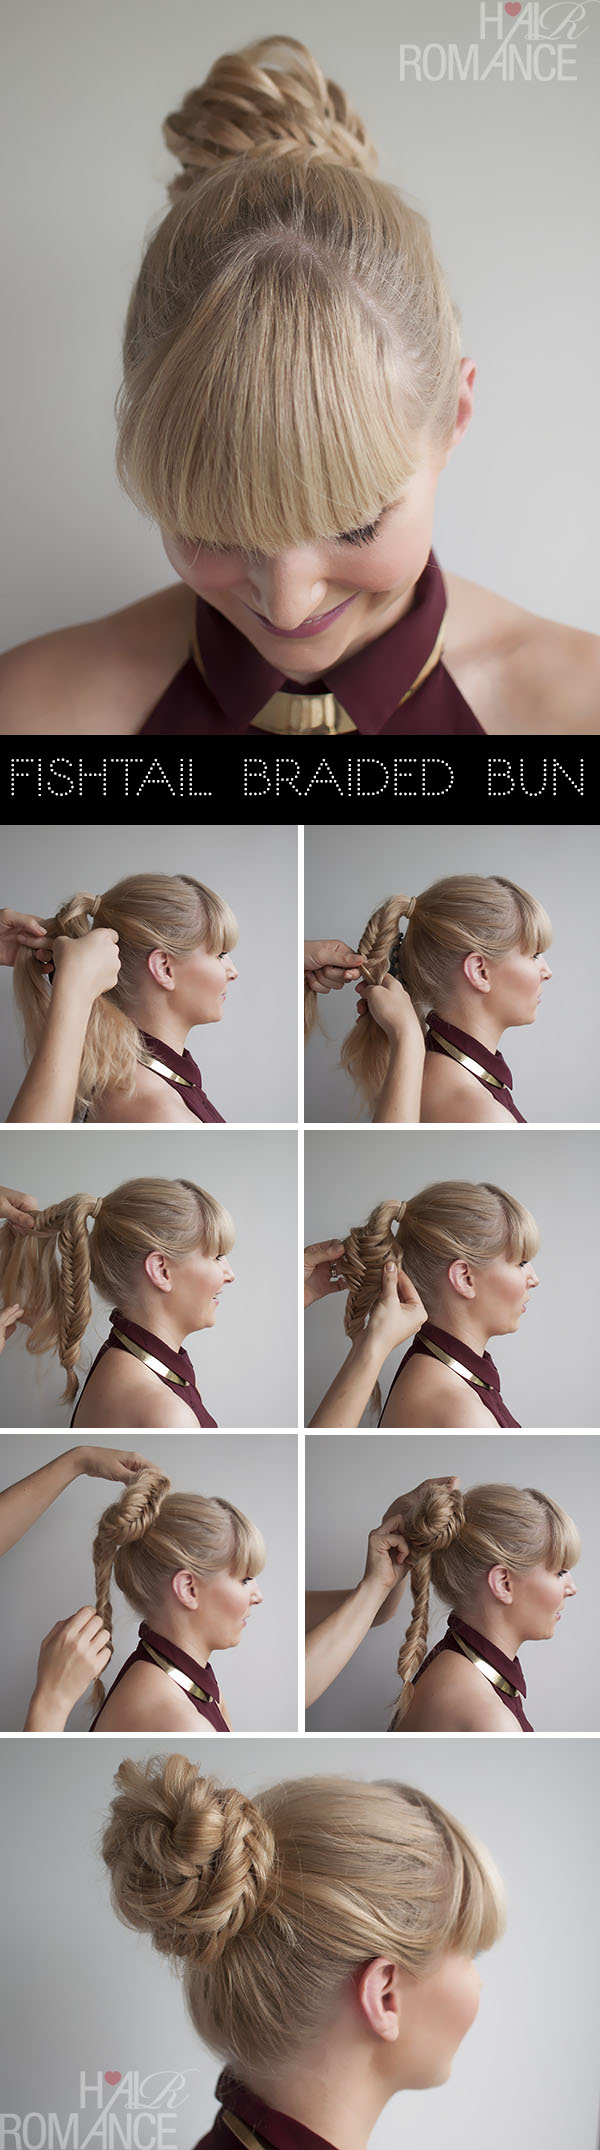 Hair Romance Fishtail Braided Bun tutorial